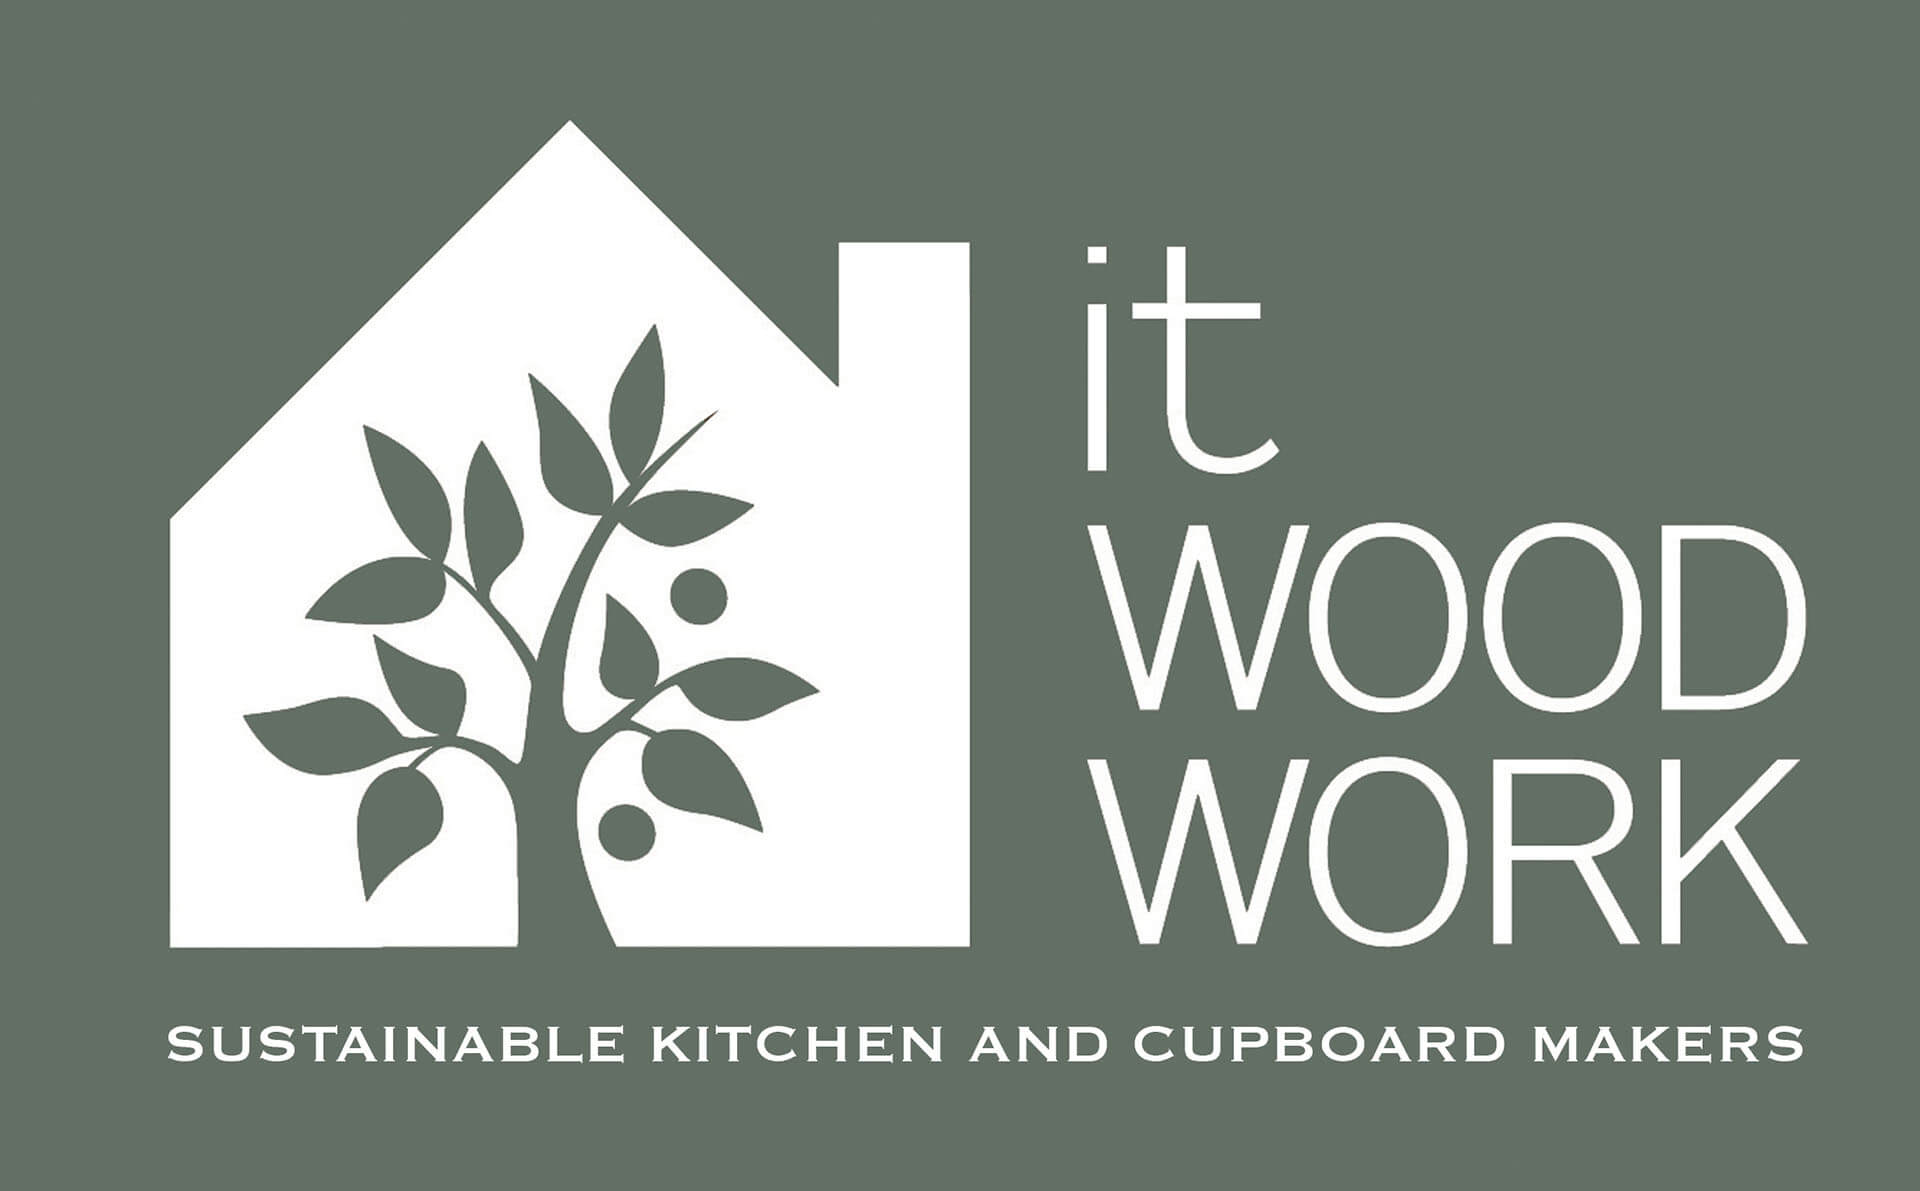 WELCOME TO THE IT WOODWORK BLOG